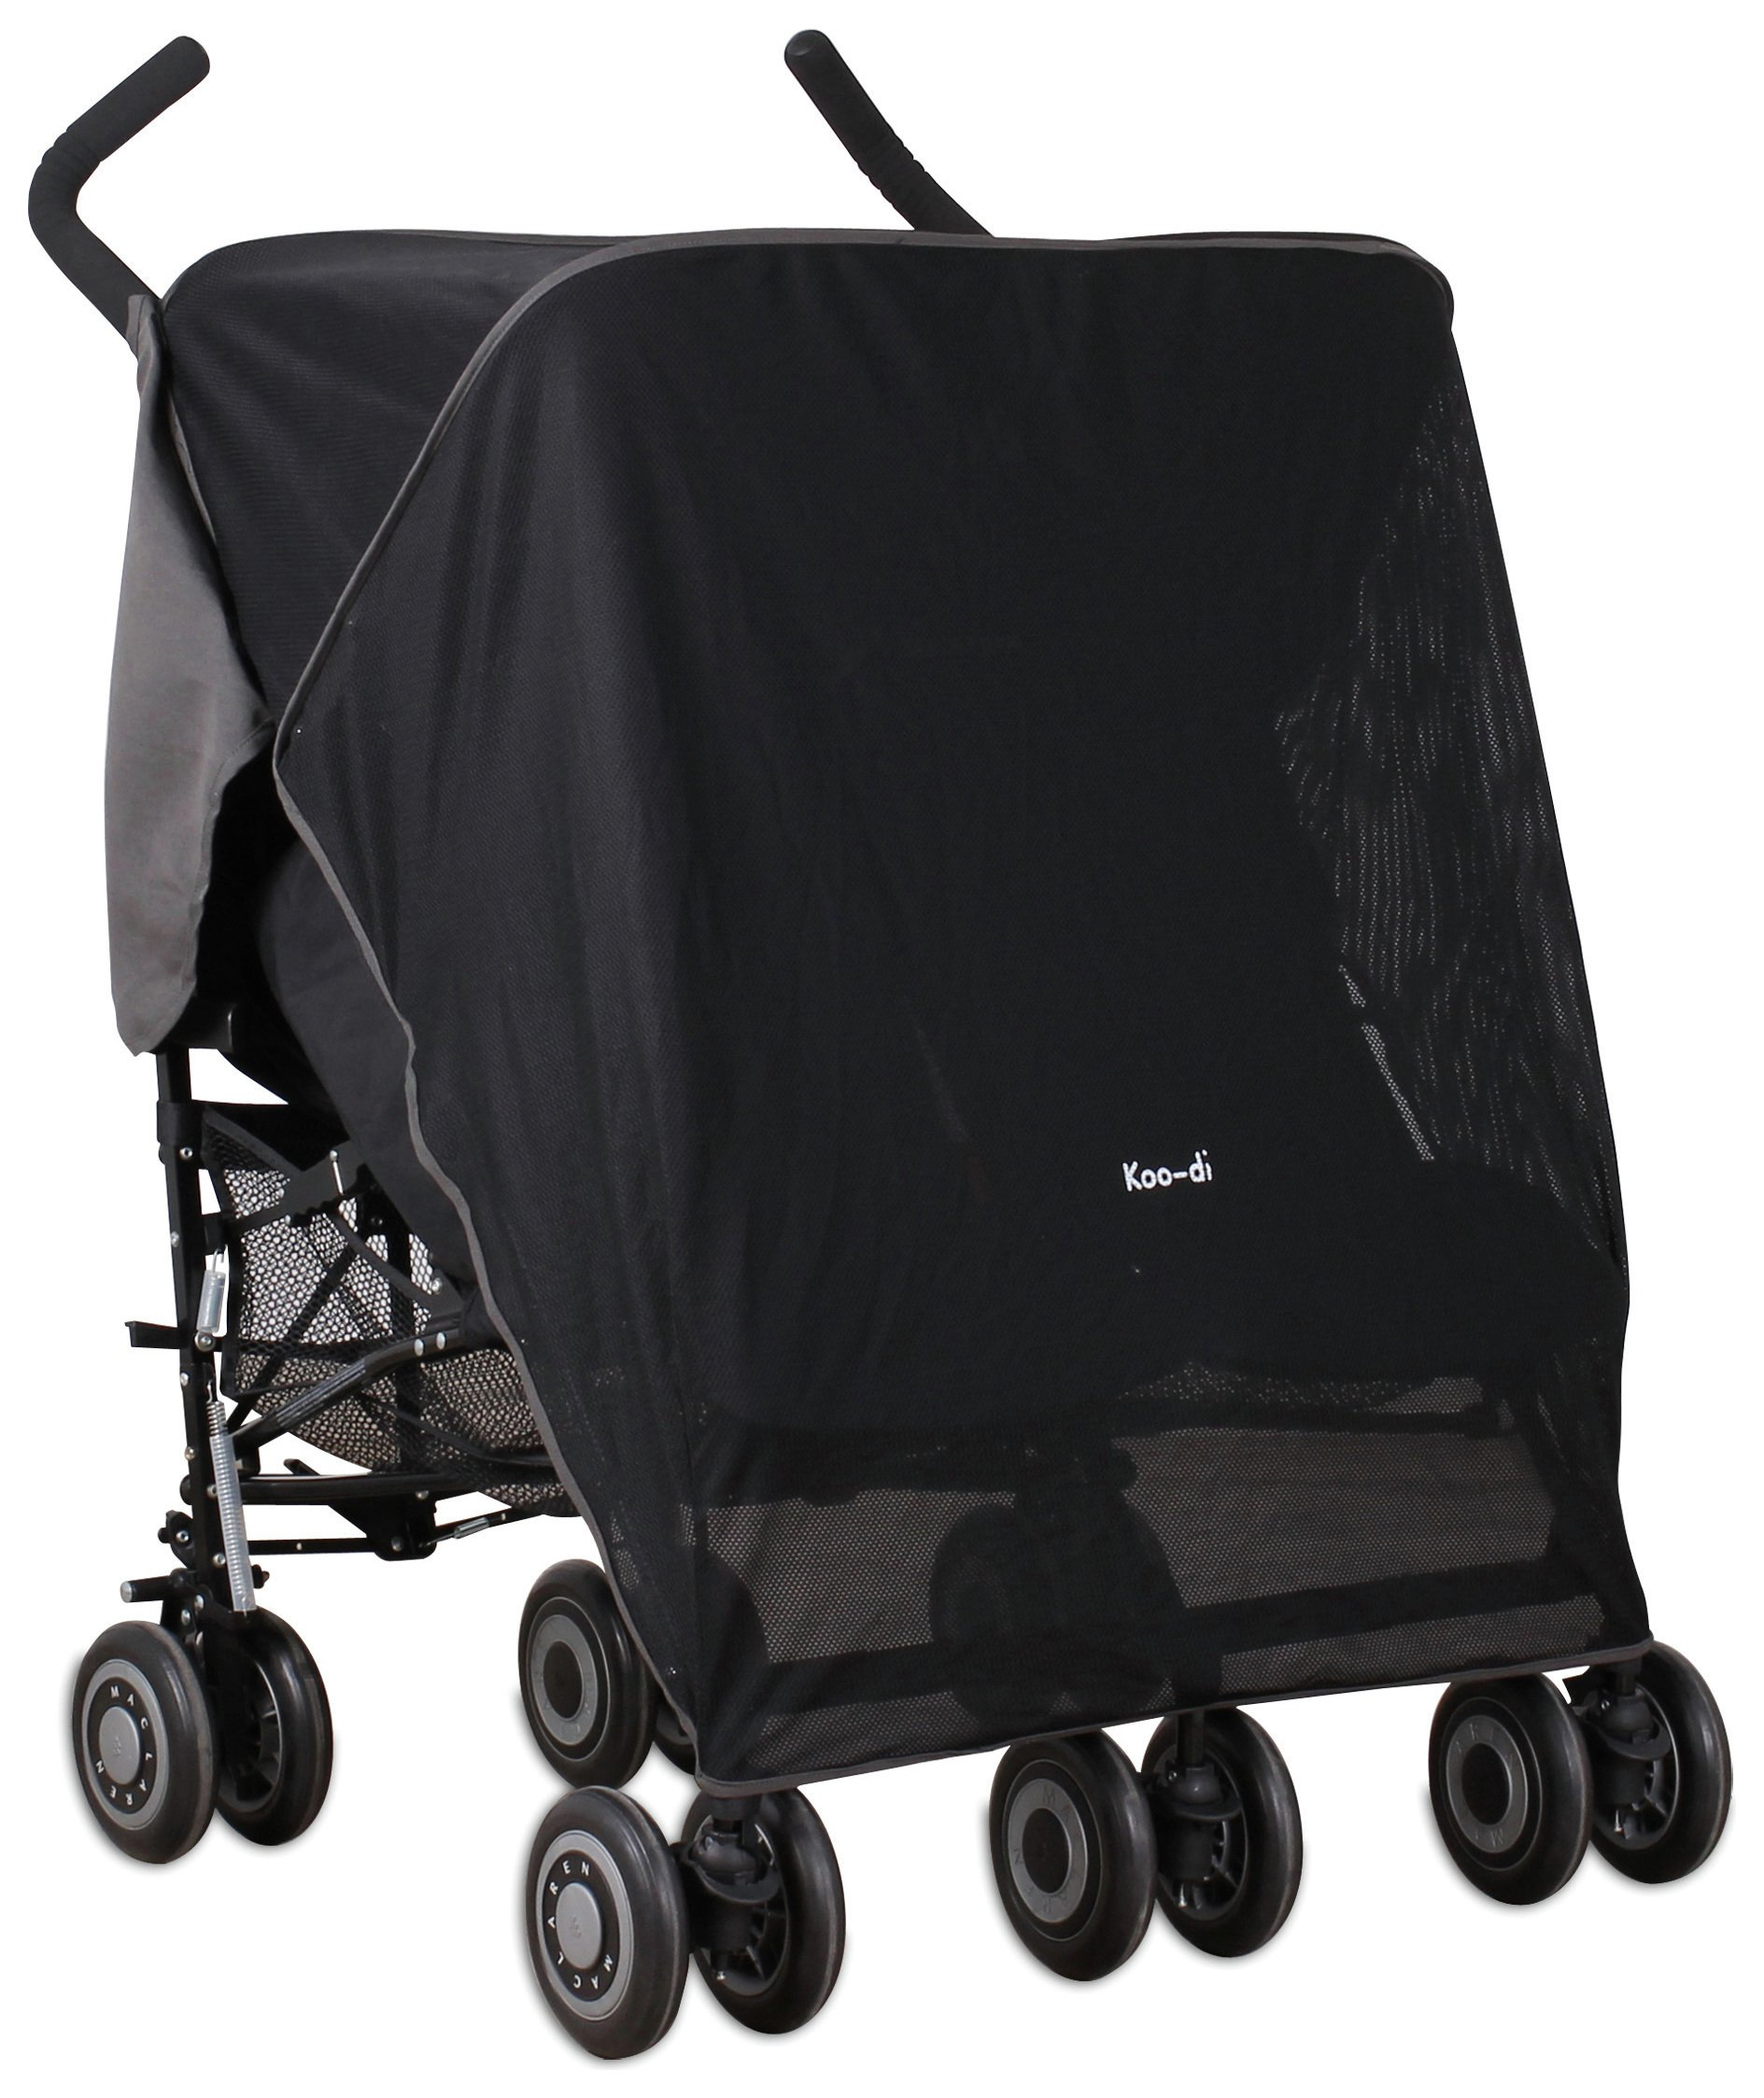 Image of Koo-di Pack-It Sun and Sleep Double - Pushchair Cover